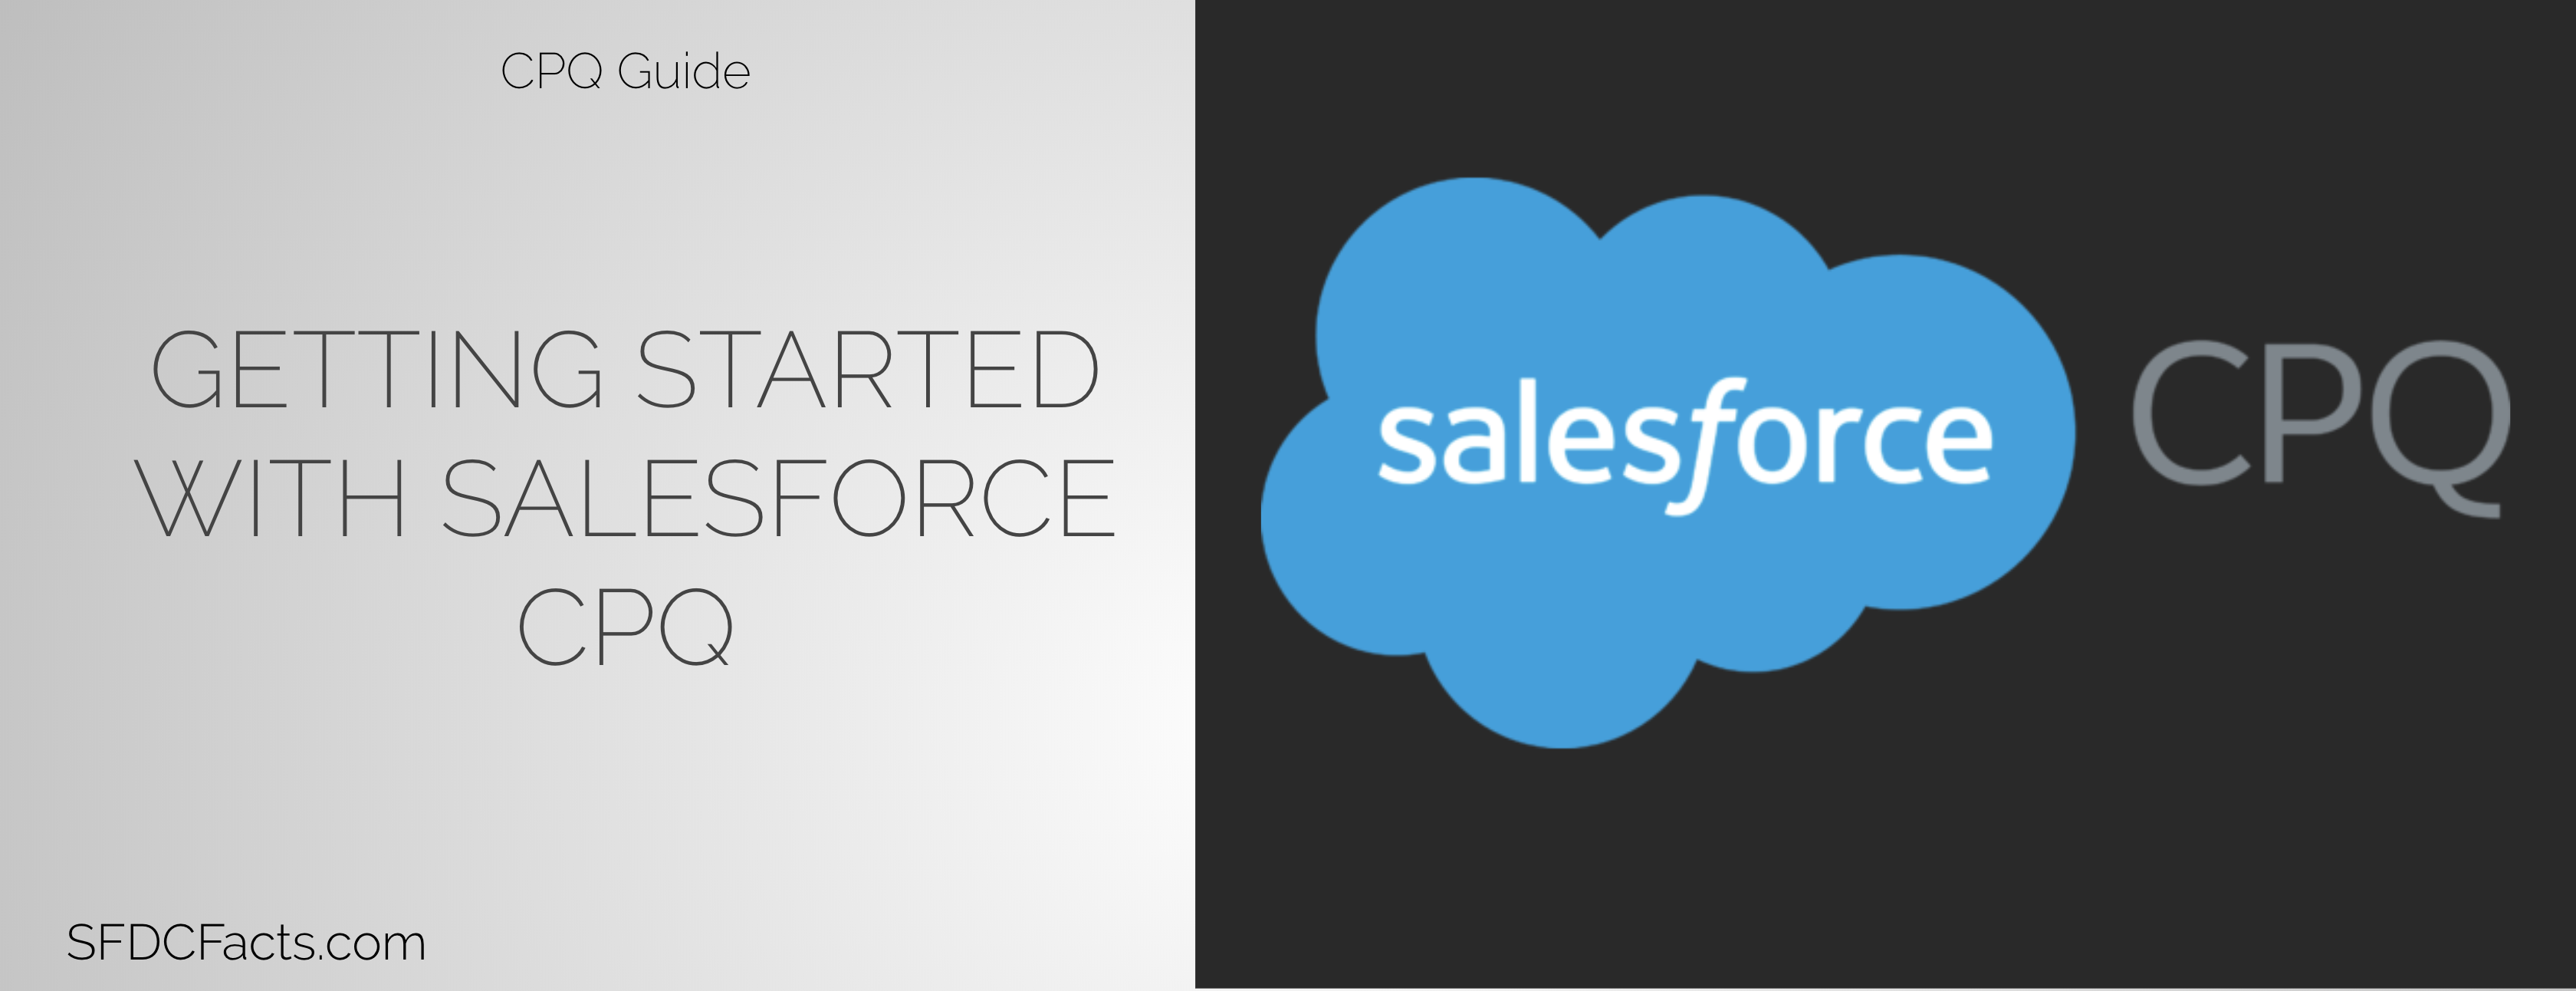 Getting started with Salesforce CPQ